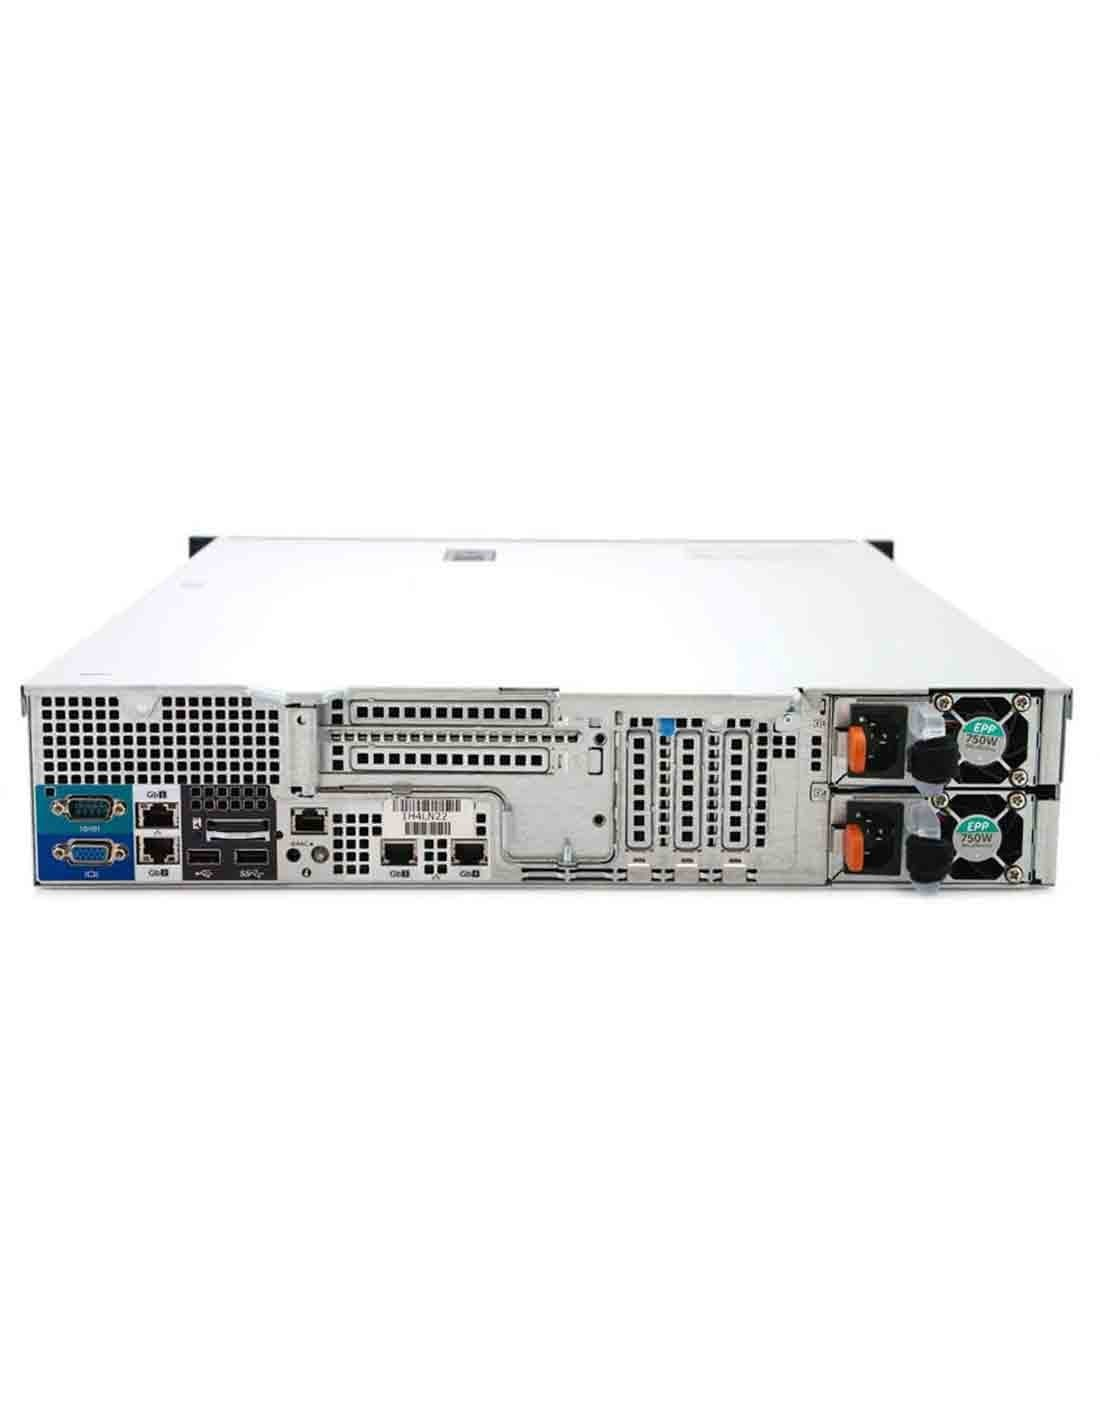 Dell PowerEdge R530 Rack Server buy now at a cheap price in Dubai computer store and save your money.